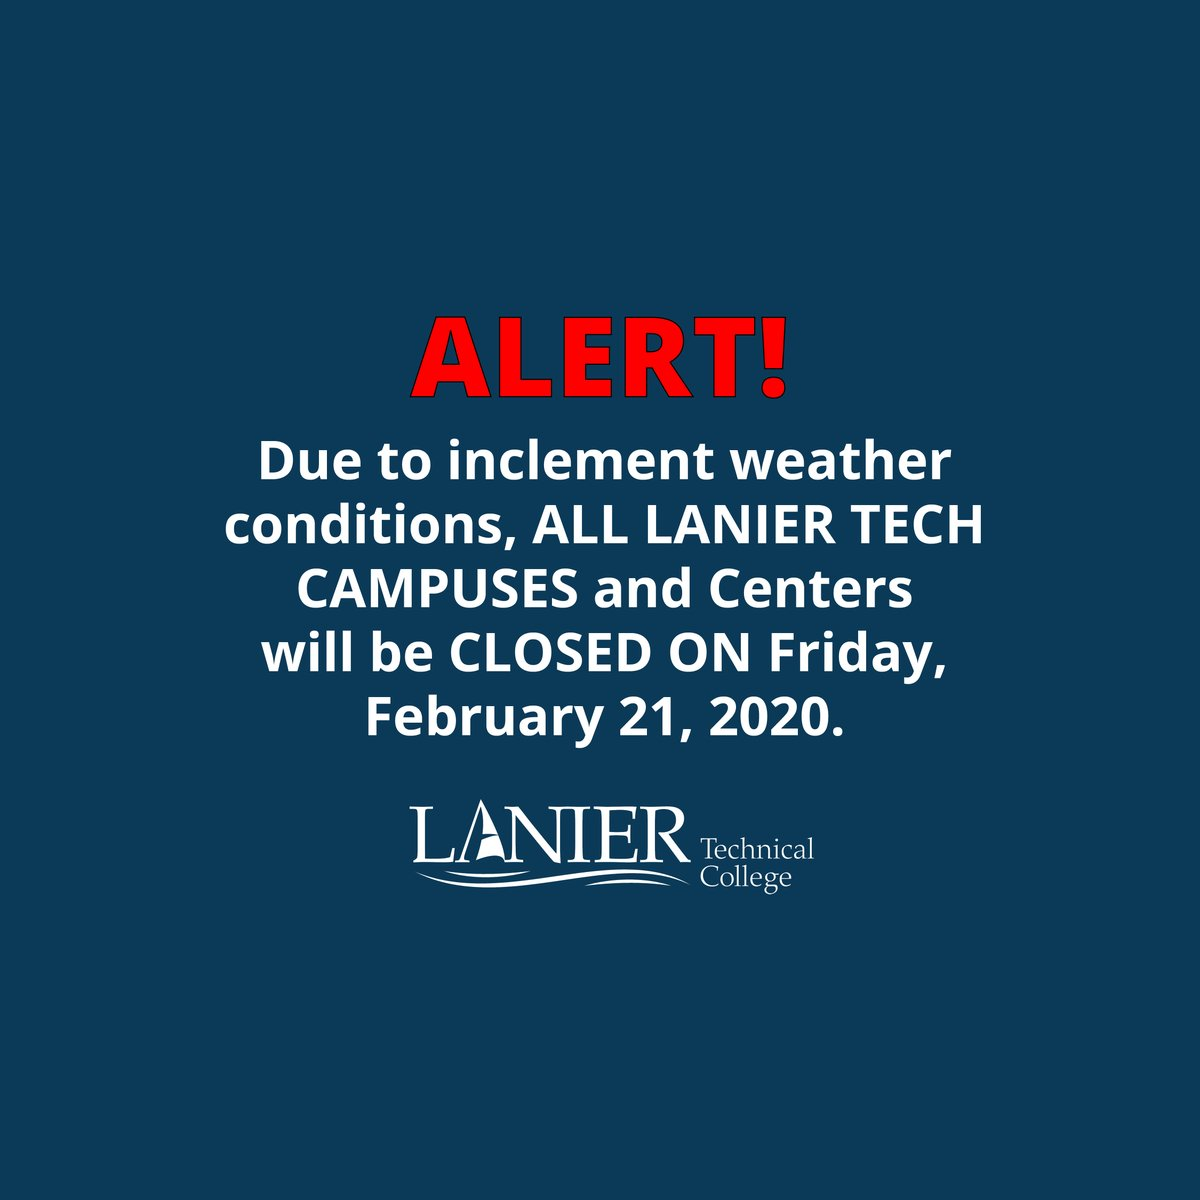 ALERT! Lanier Technical College is closed today, Friday, February 21, 2020. We will resume normal operations on Monday, February 24, 2020.  Be safe everyone.  #tcsg #WEARELaniertecg #greatcareersbeginherepic.twitter.com/wckfd9YEDG